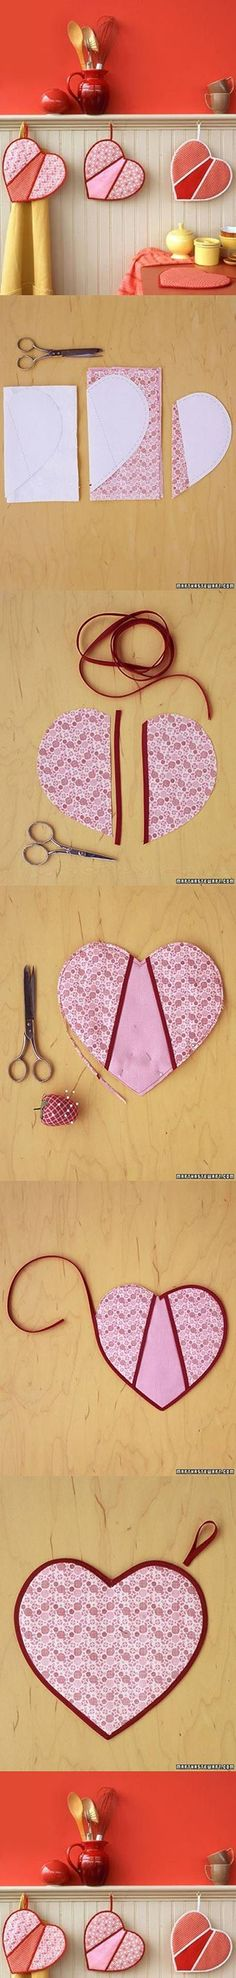 DIY Heart Shaped Pot Holders | DIY & Crafts Tutorials